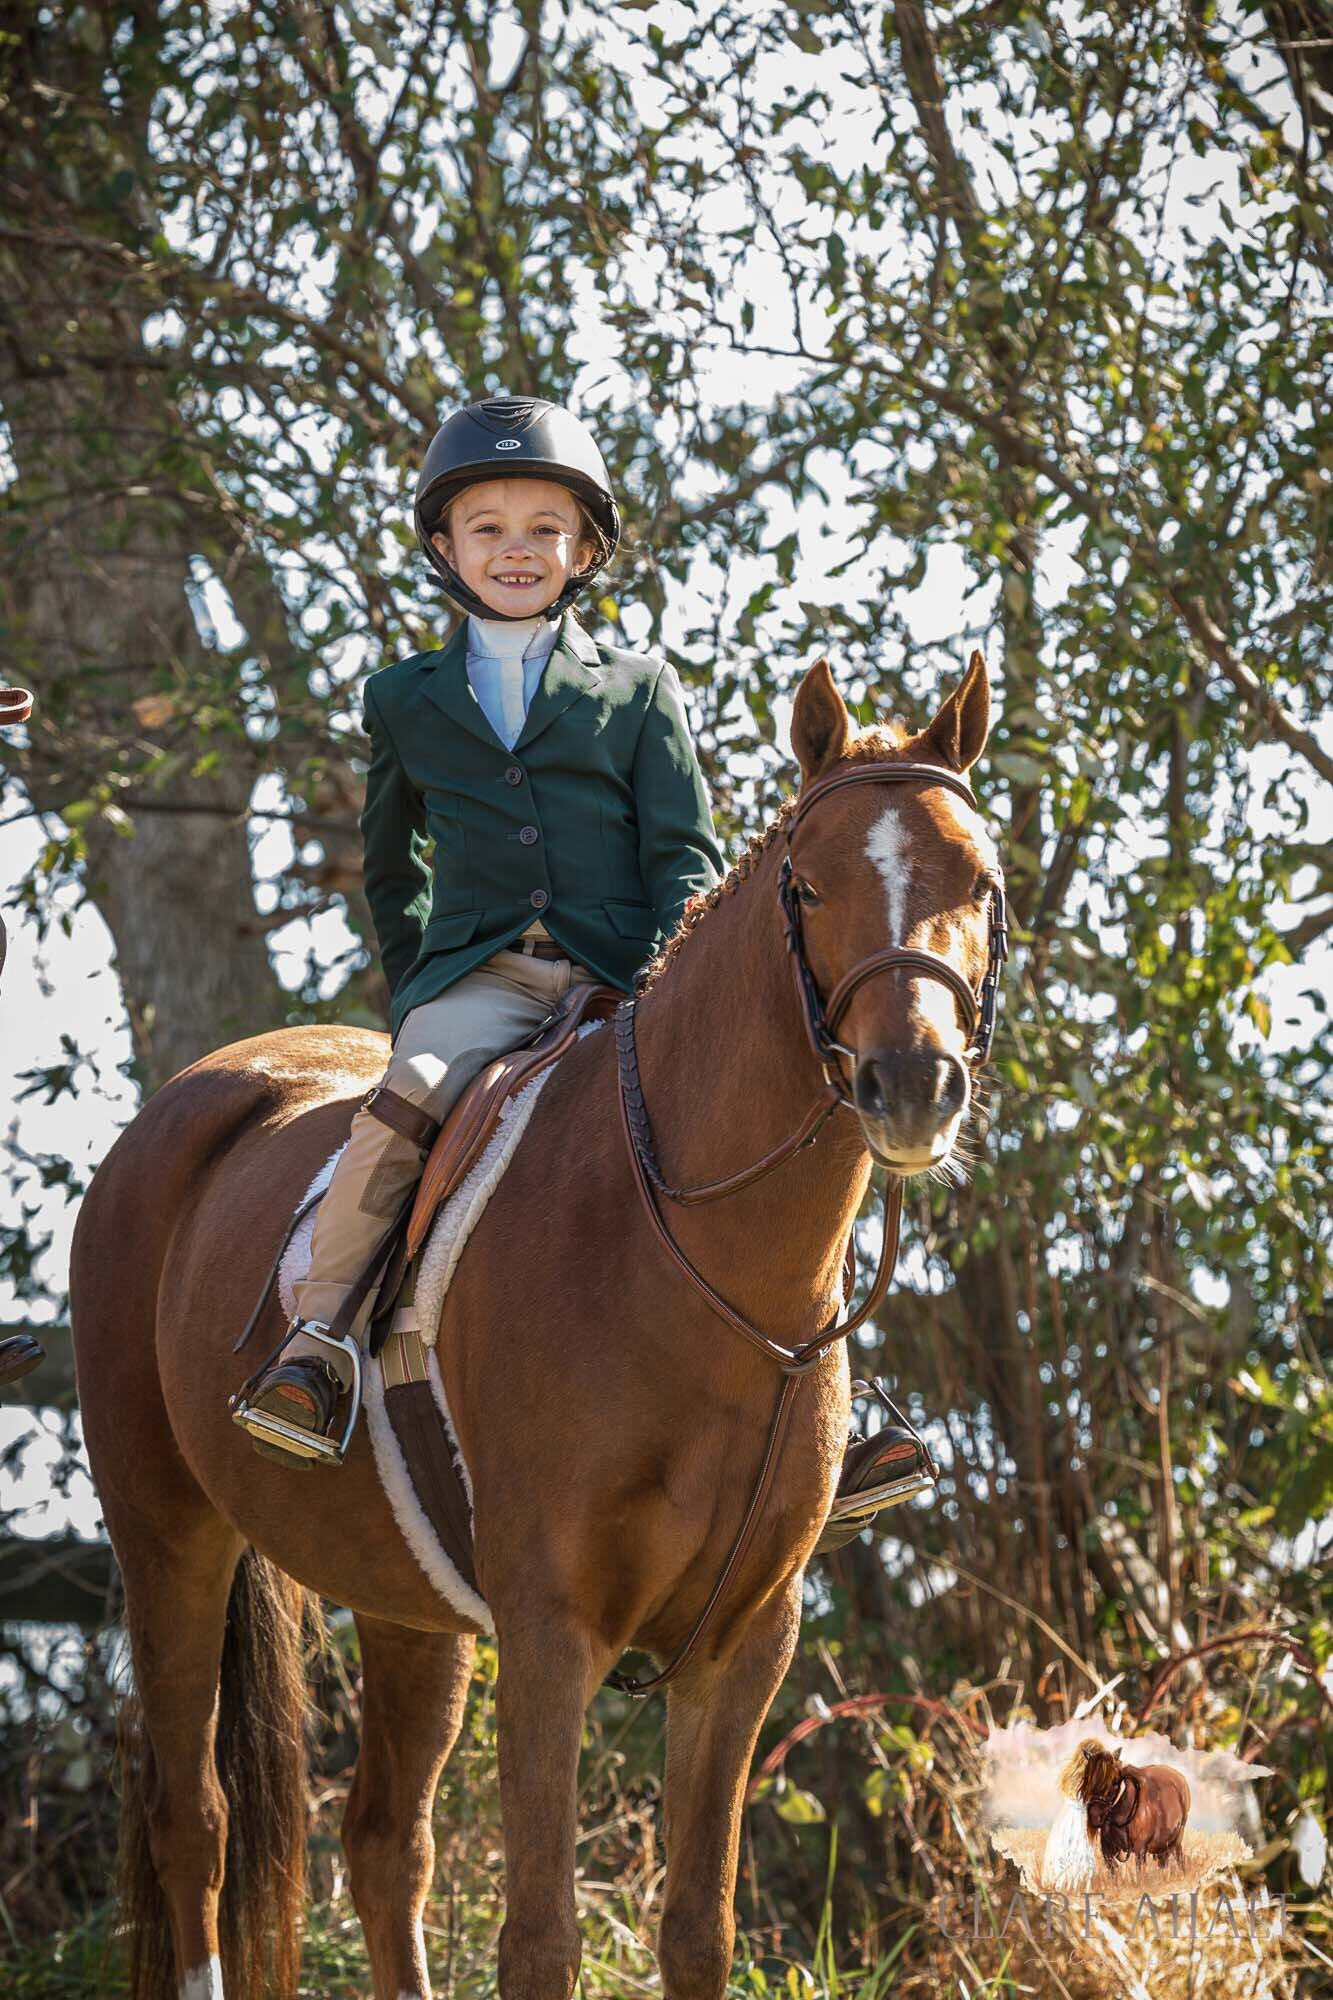 equine_photographer_potomac_md_equine_photographer_middleburg_VA_equine_portraiture_loudon_county_VA-1172.jpg